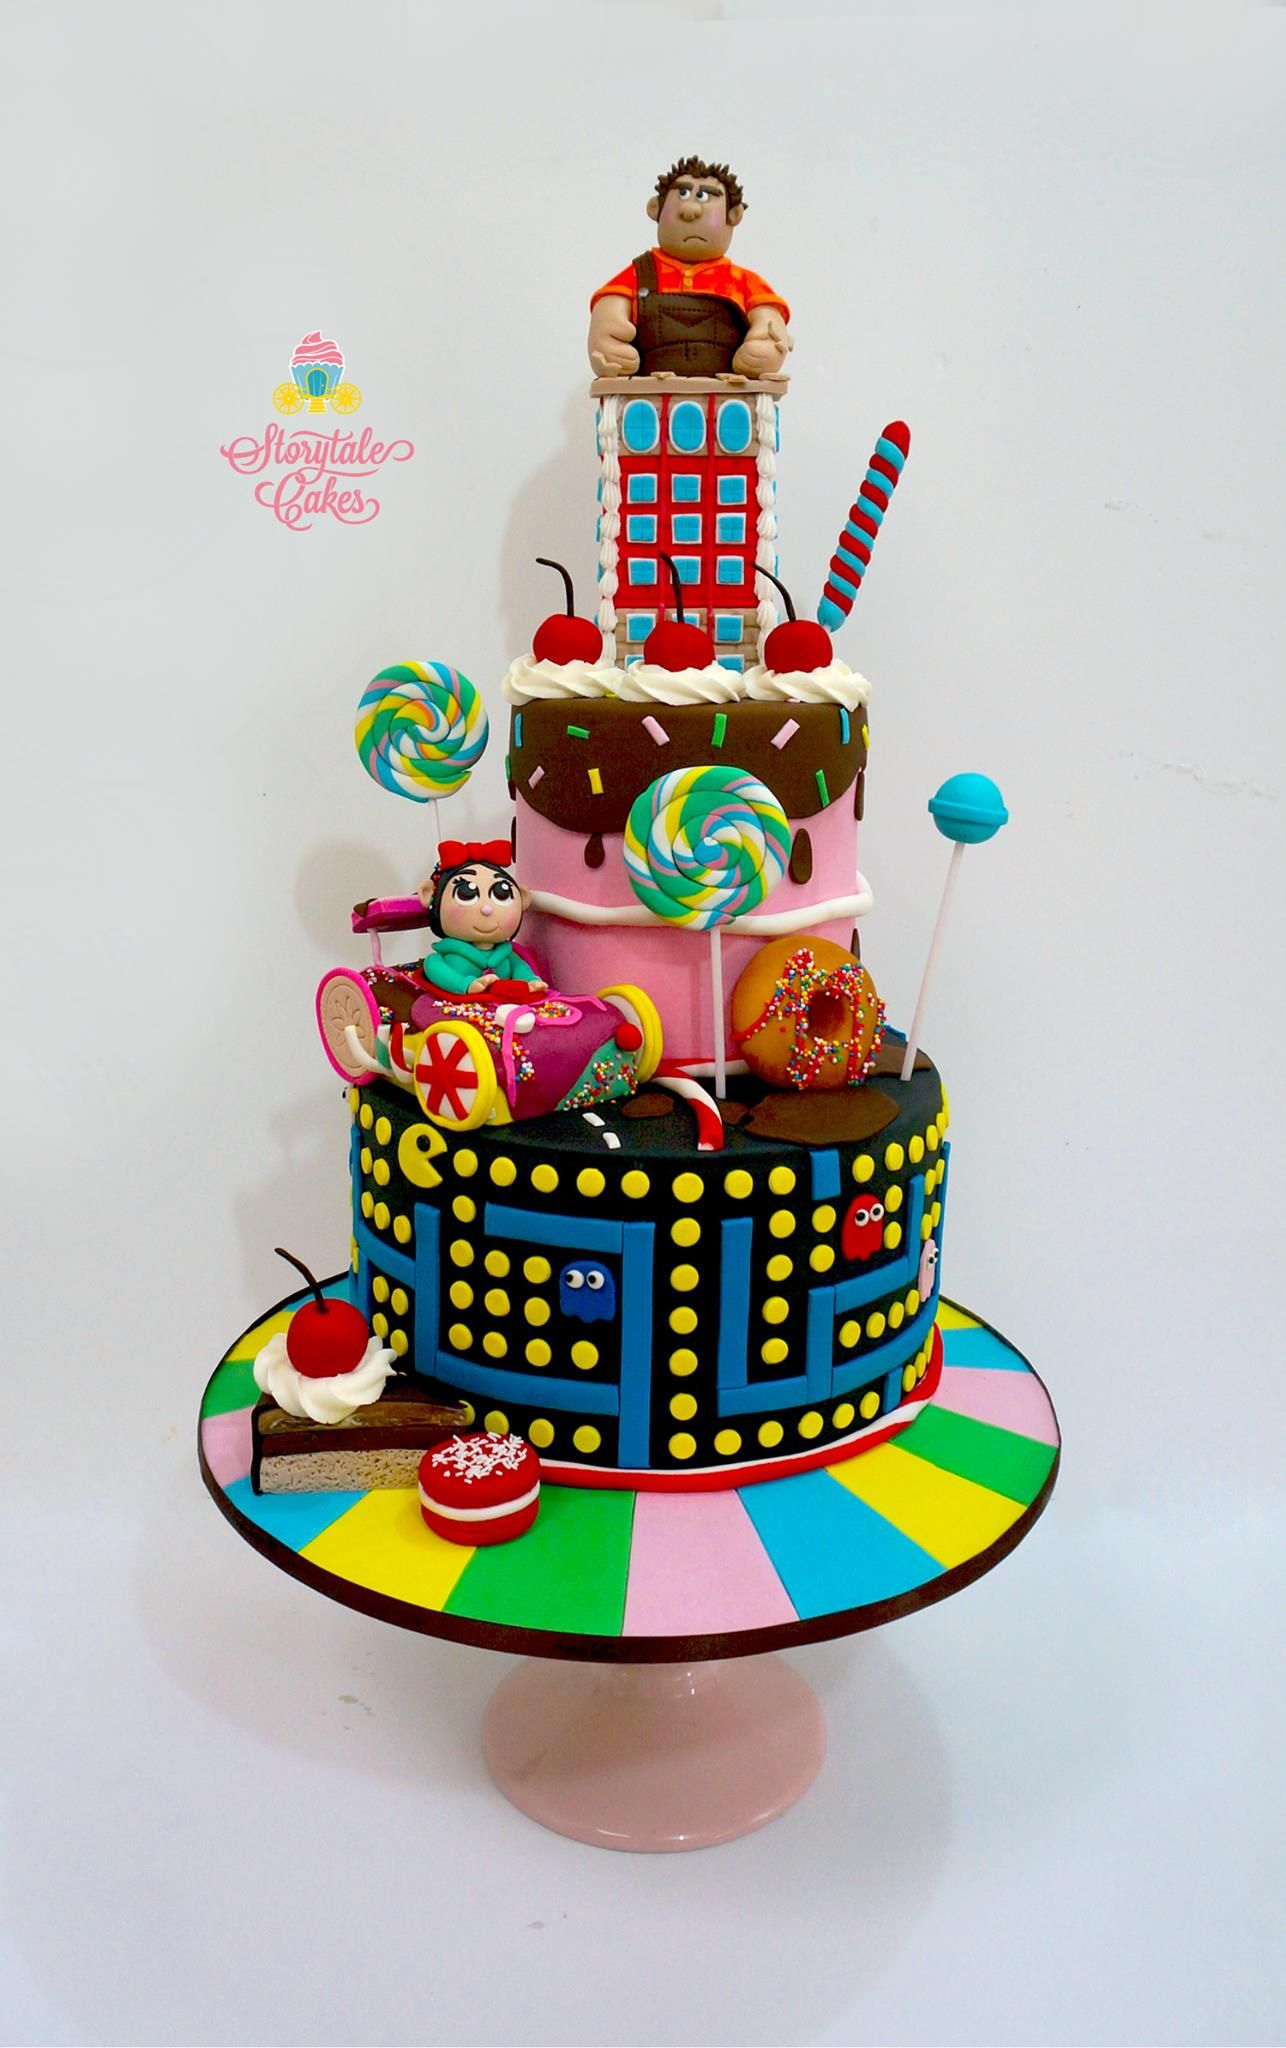 Wreck It Ralph Storytale Cakes Facebook Birthday Cake Kids